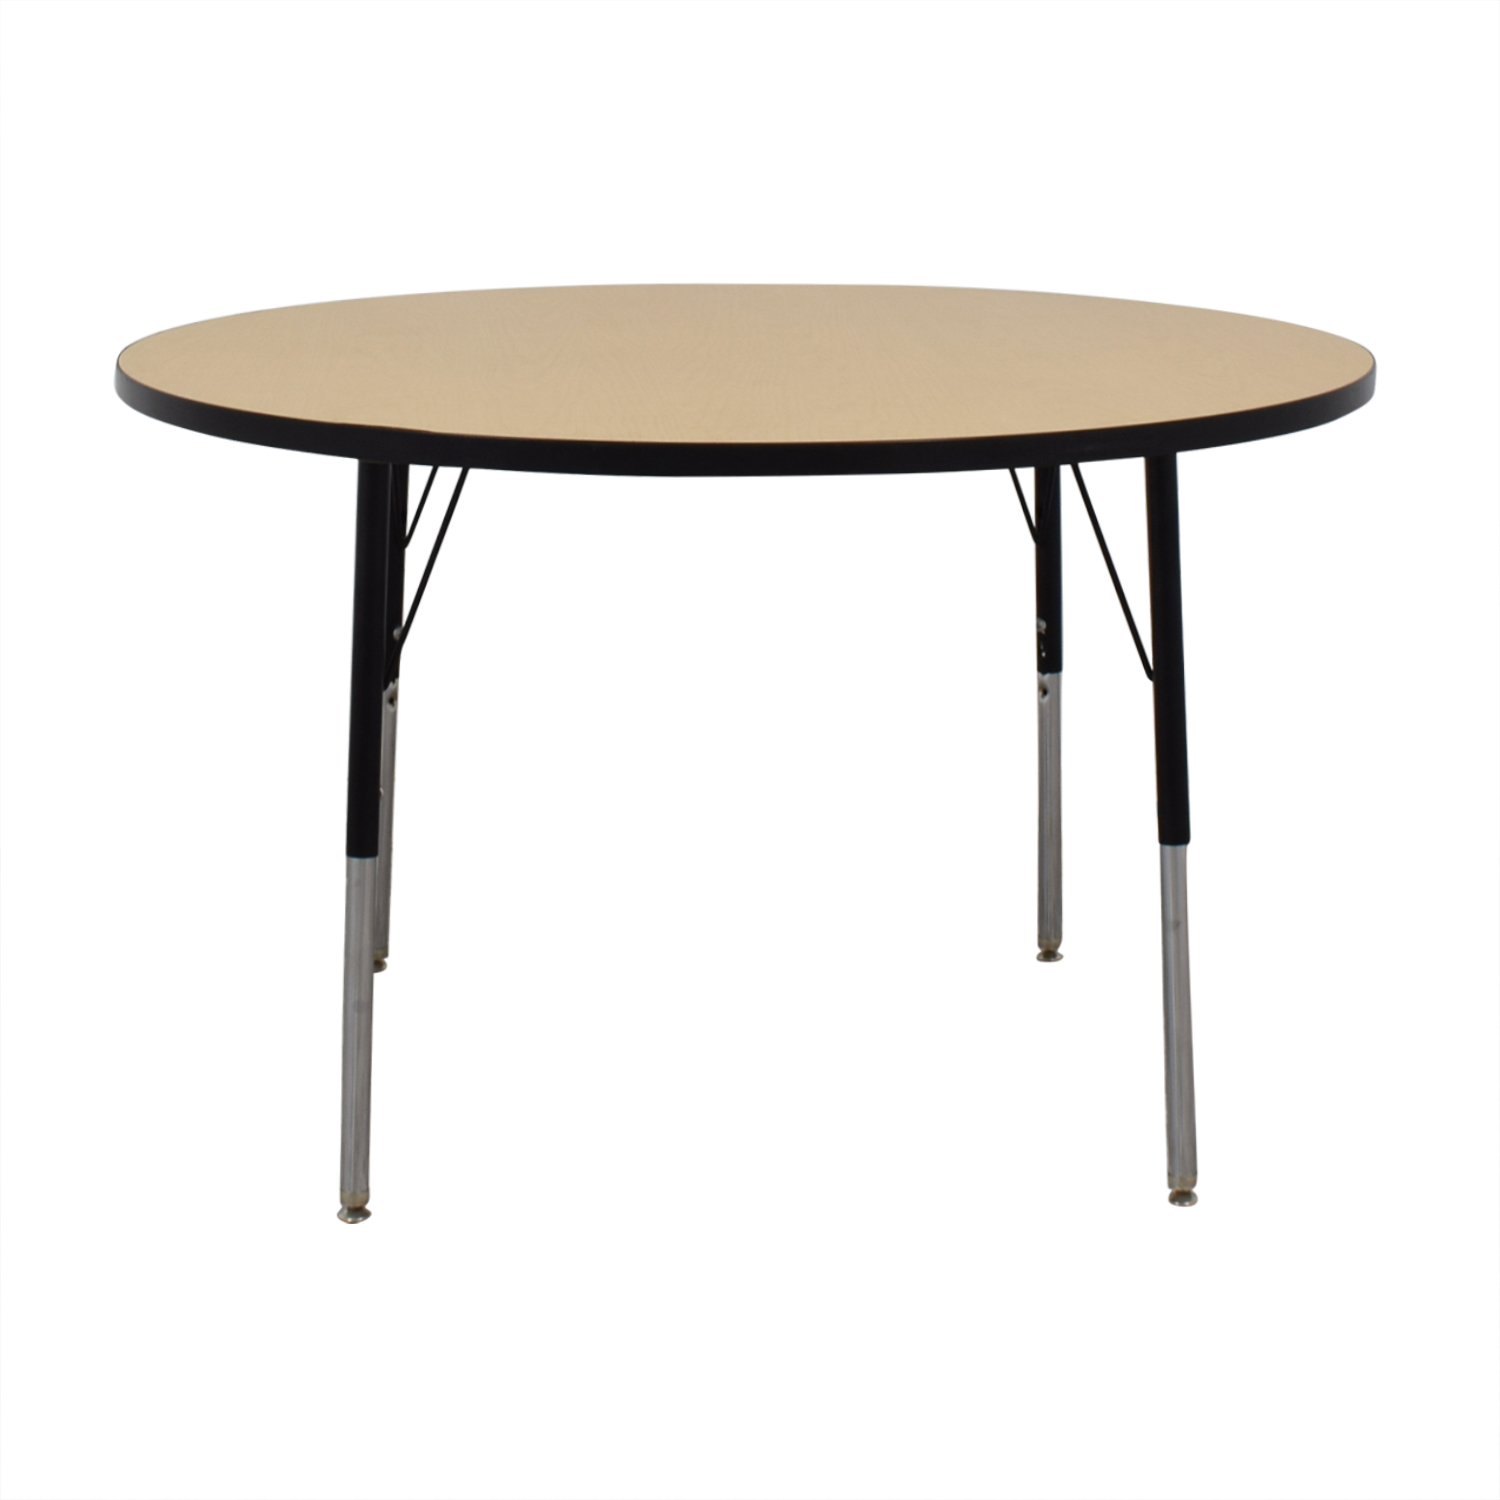 Round Activity Table second hand